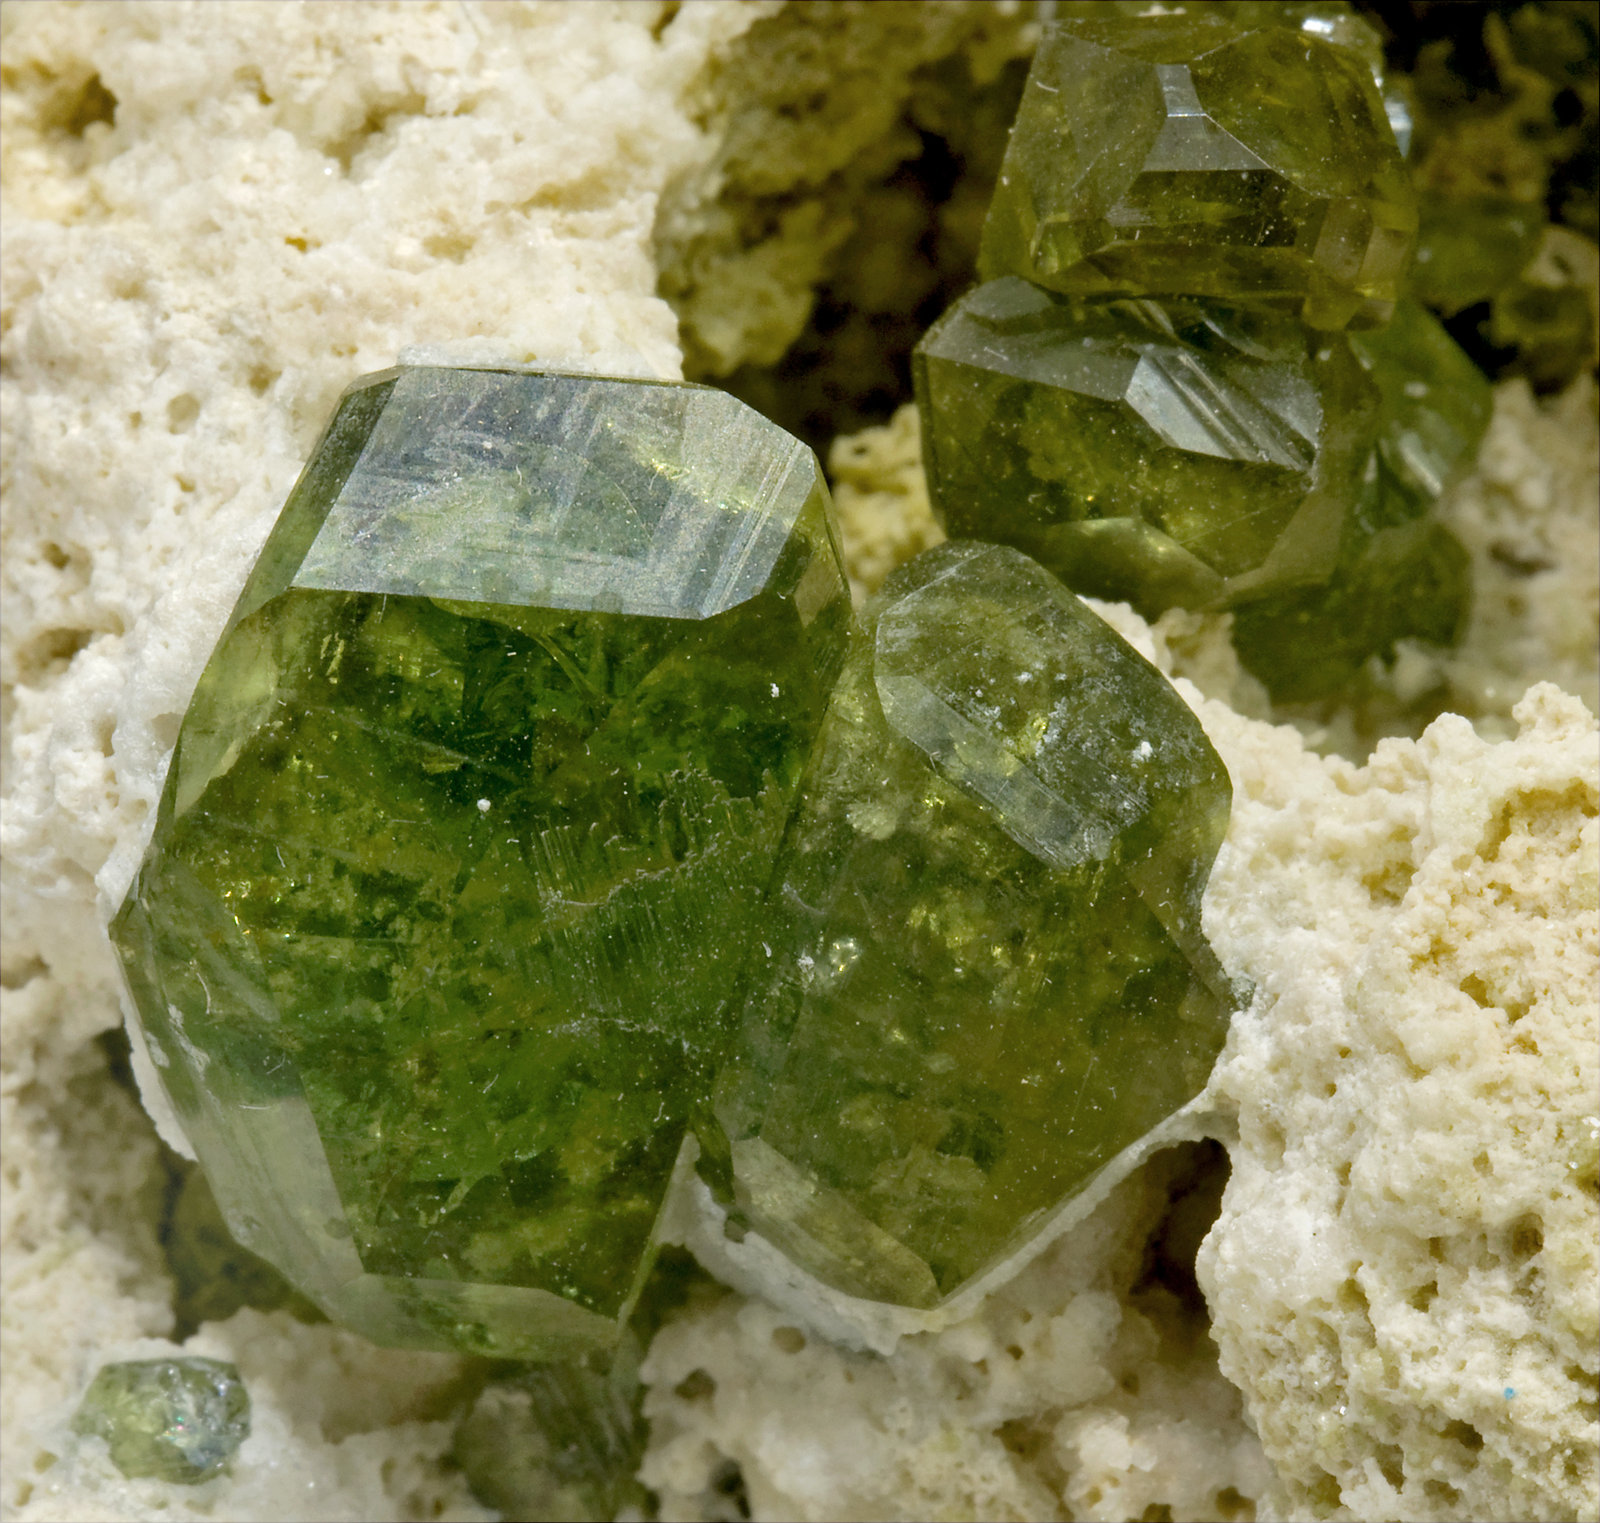 specimens/s_imagesS9/Andradite_Demantoid-TK52S9d1.jpg